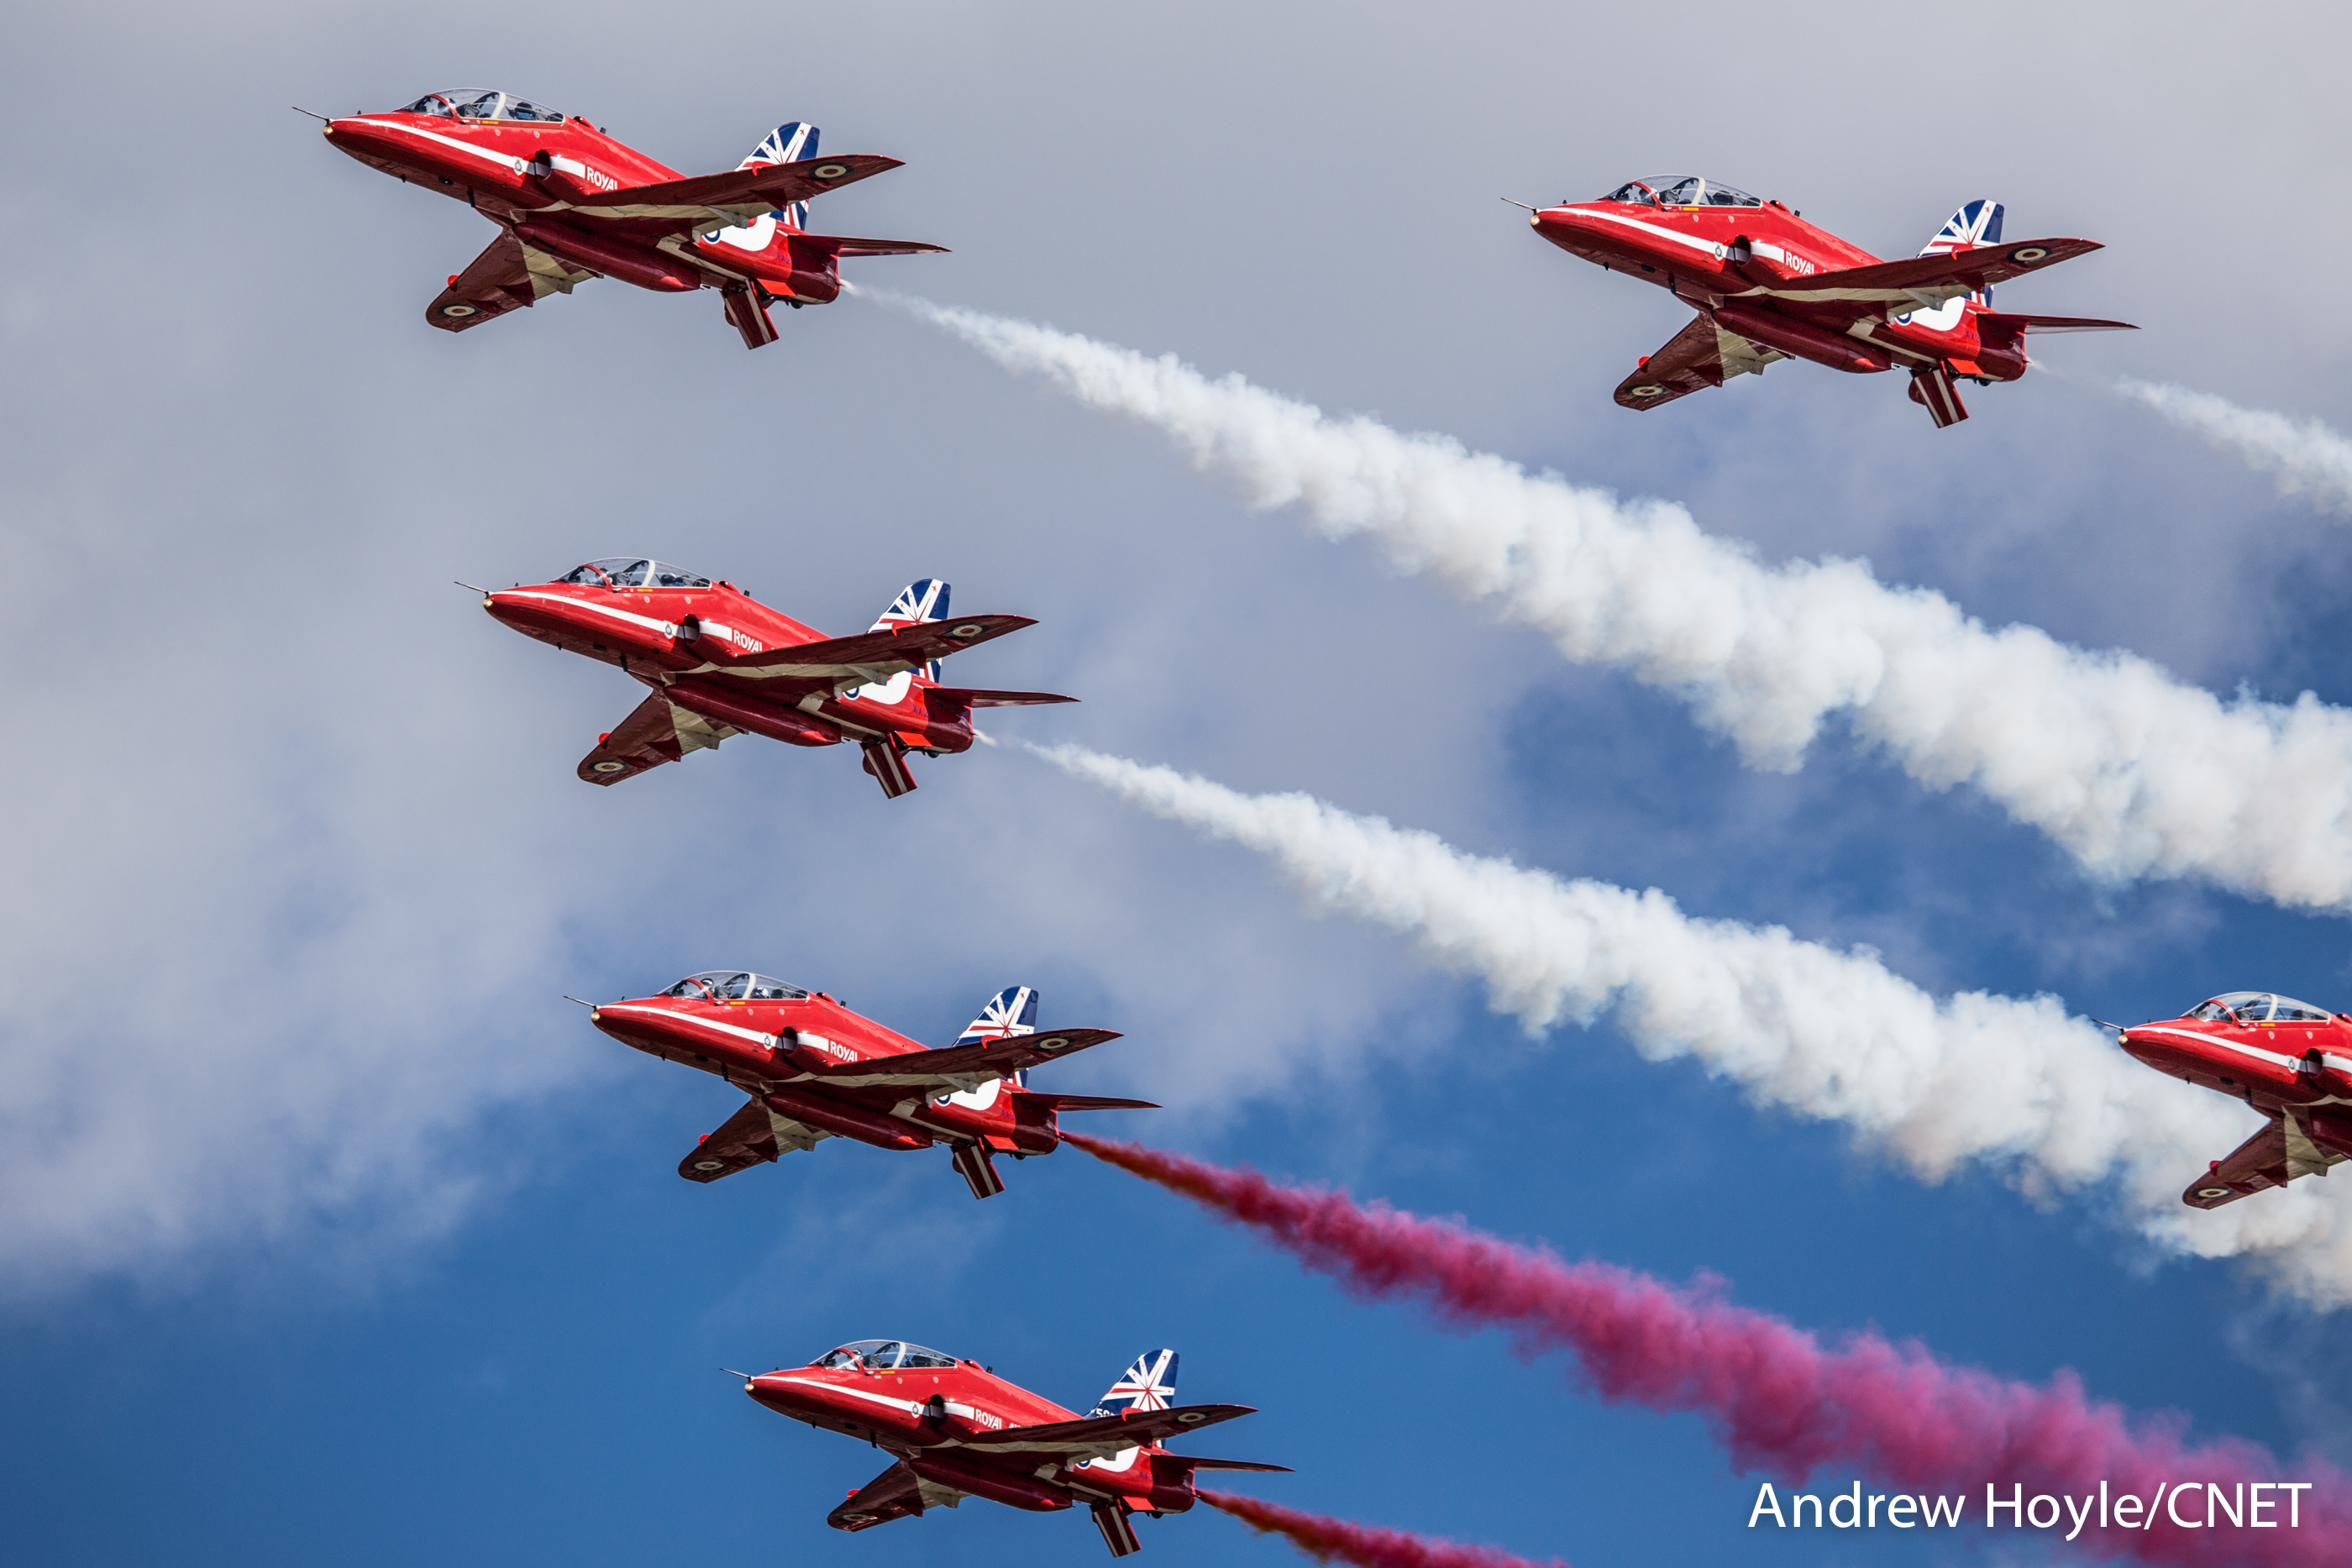 farnborough-airshow-2014-28.jpg